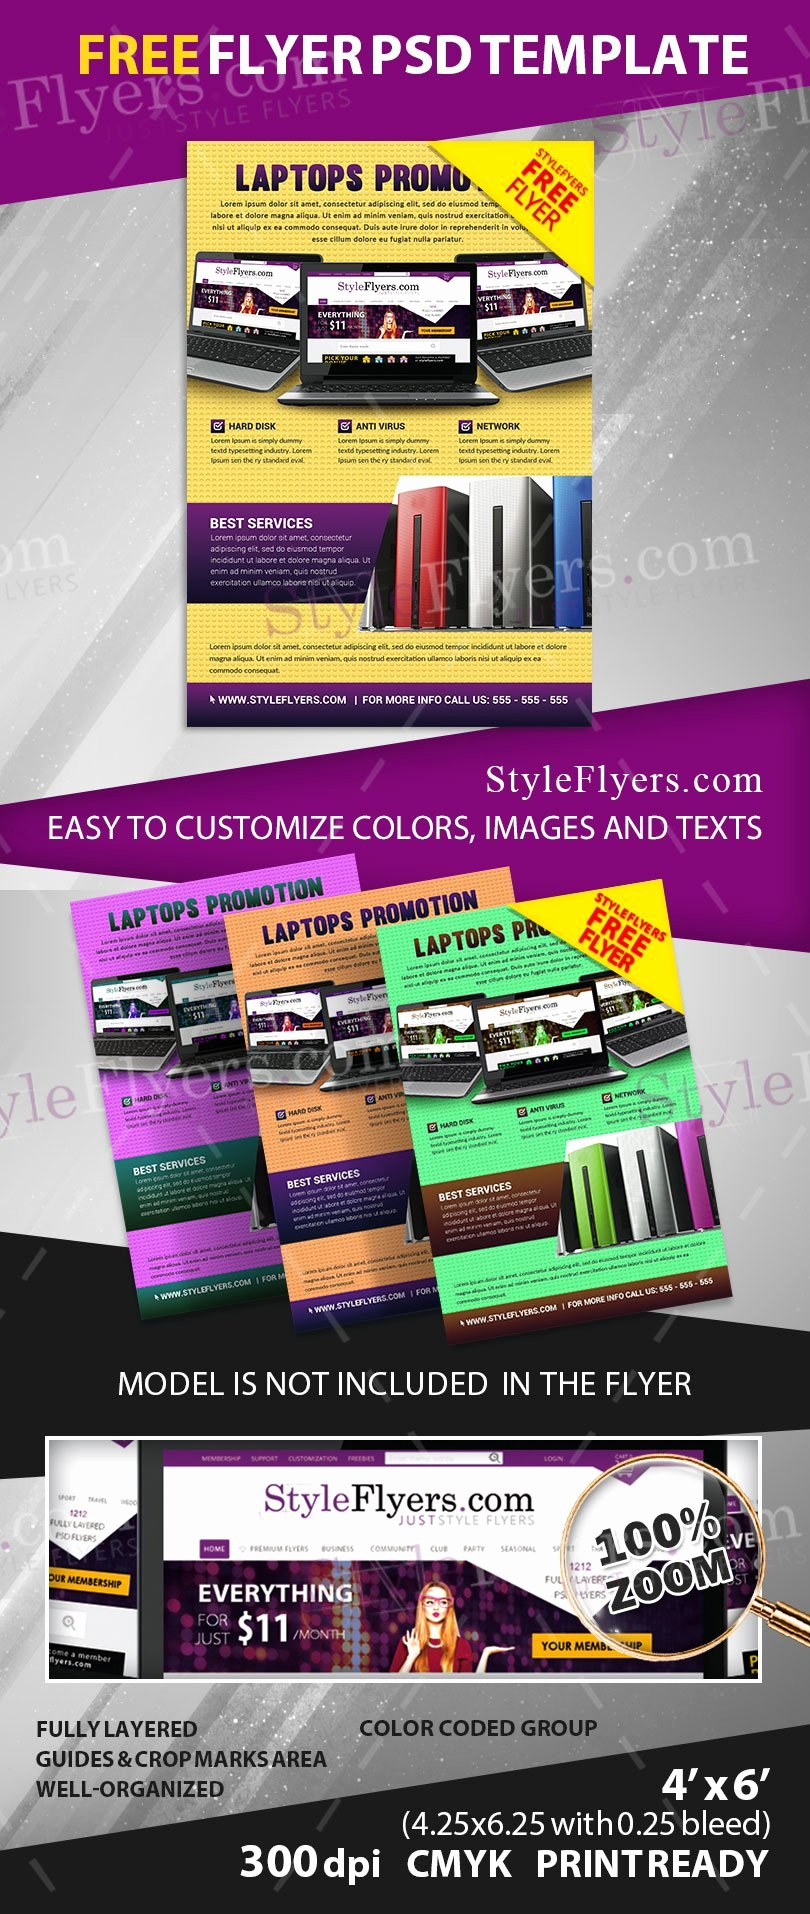 Promotion Flyer Template Free Inspirational Free Promo Flyer Psd Flyer Template Free Download